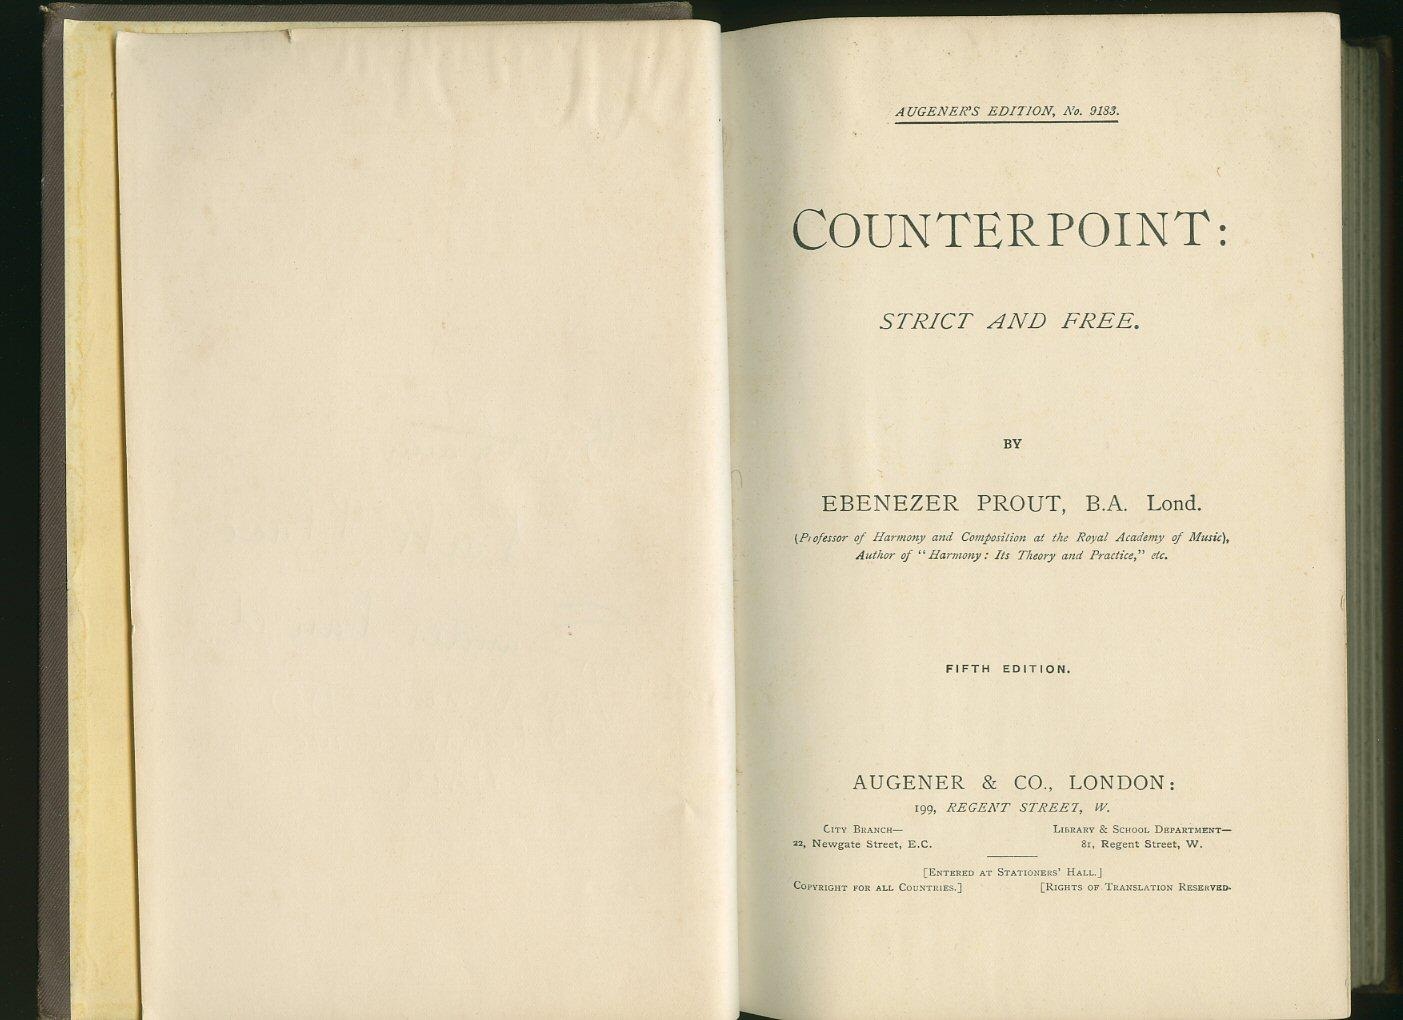 Counterpoint: Strict and Free [Augener's